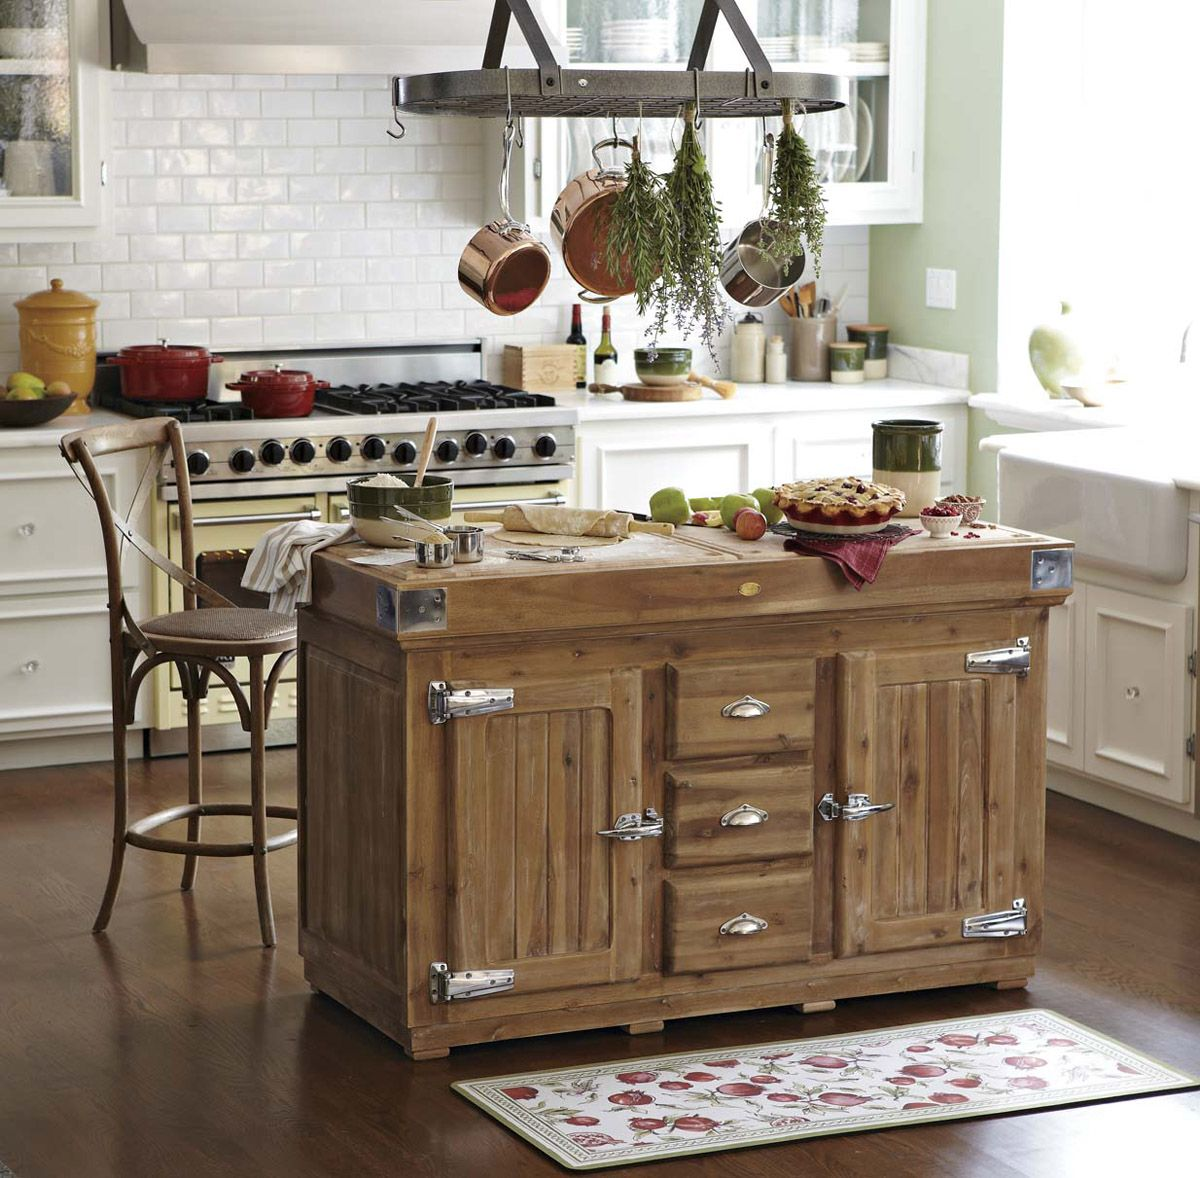 25 Awesome Rustic Kitchen Island Ideas To Try This 2020